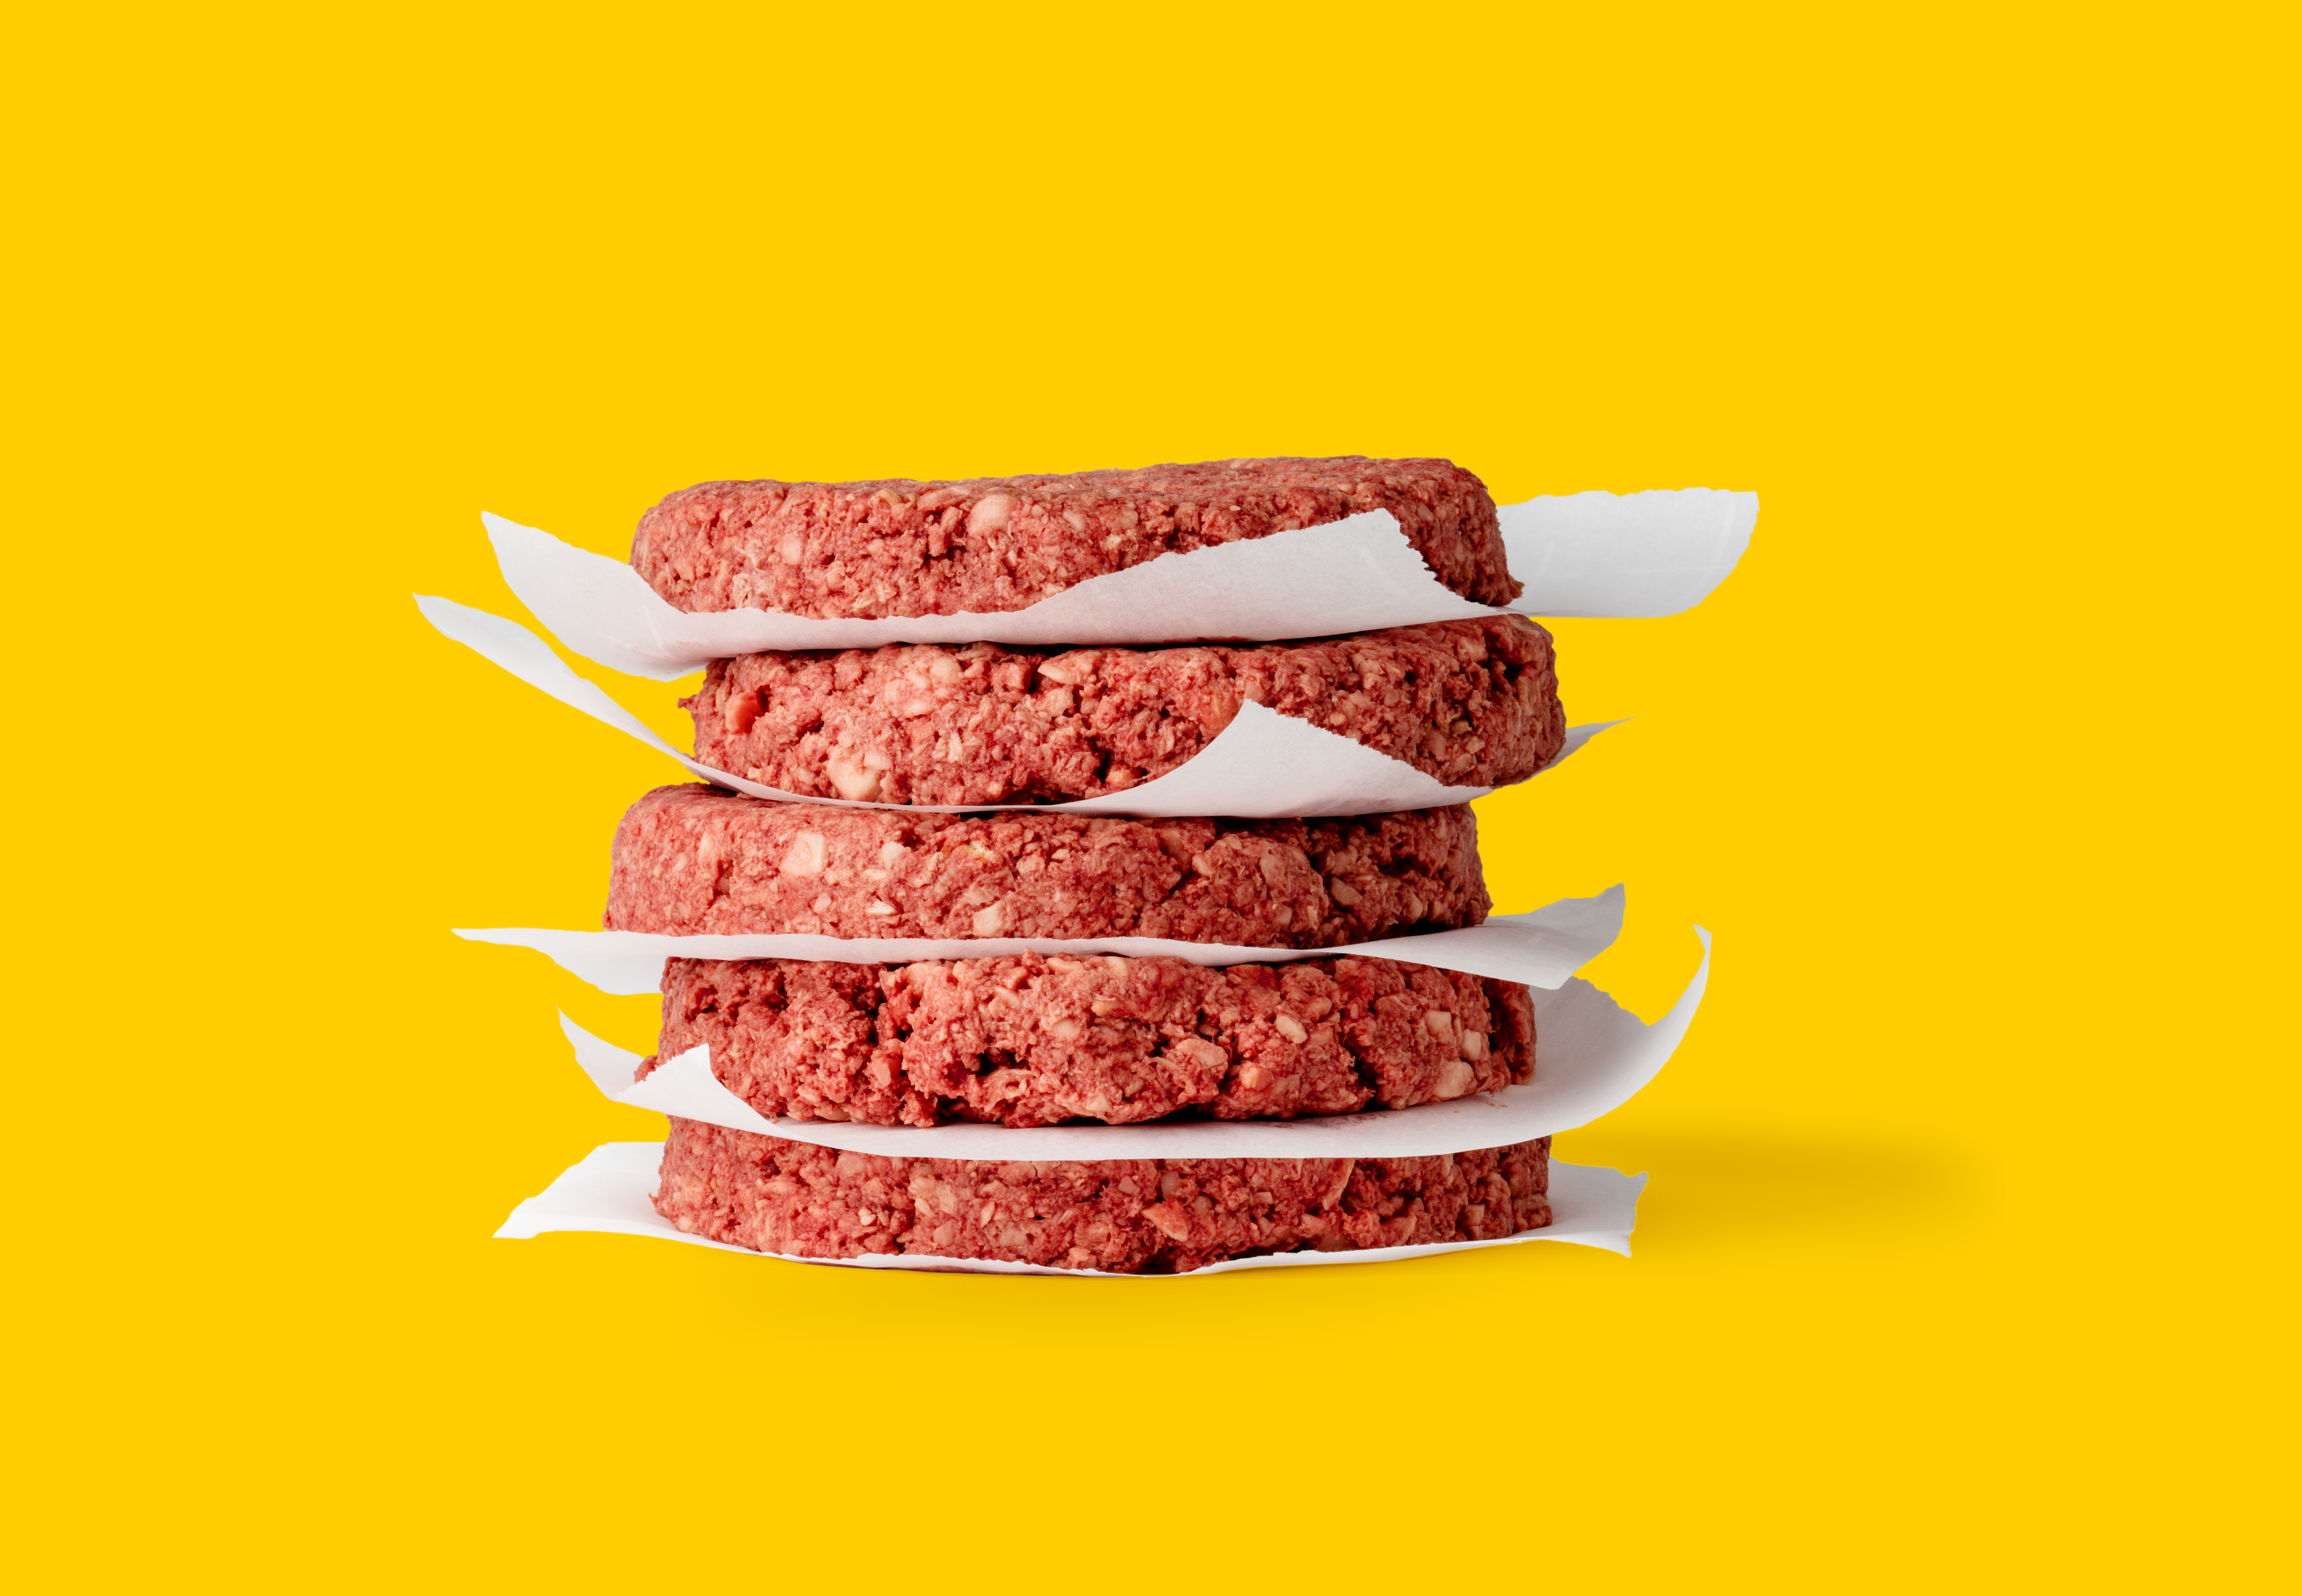 Impossible Foods meat-free burger patties.